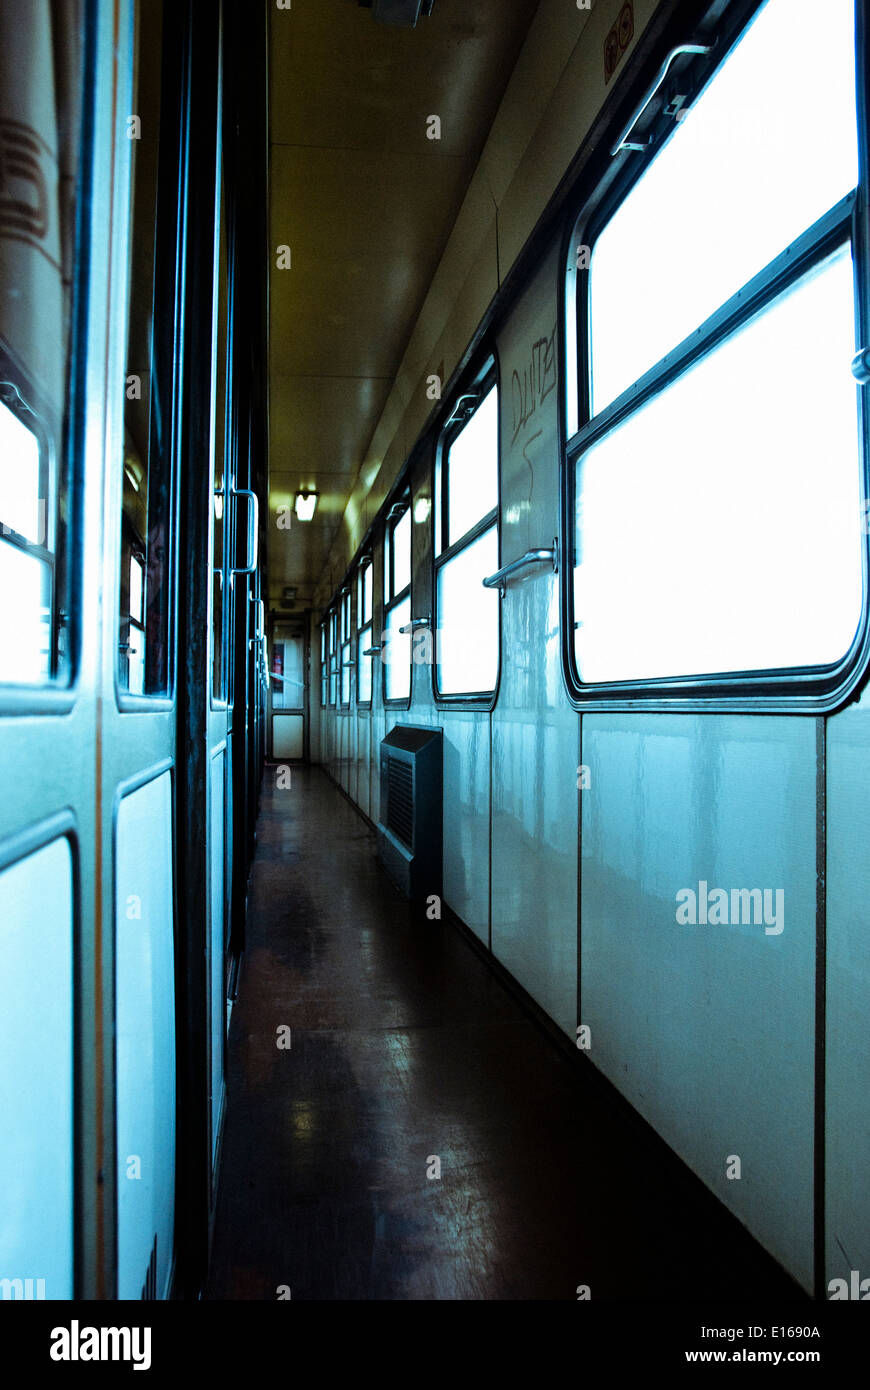 Czech railways intercity train corridor - Stock Image